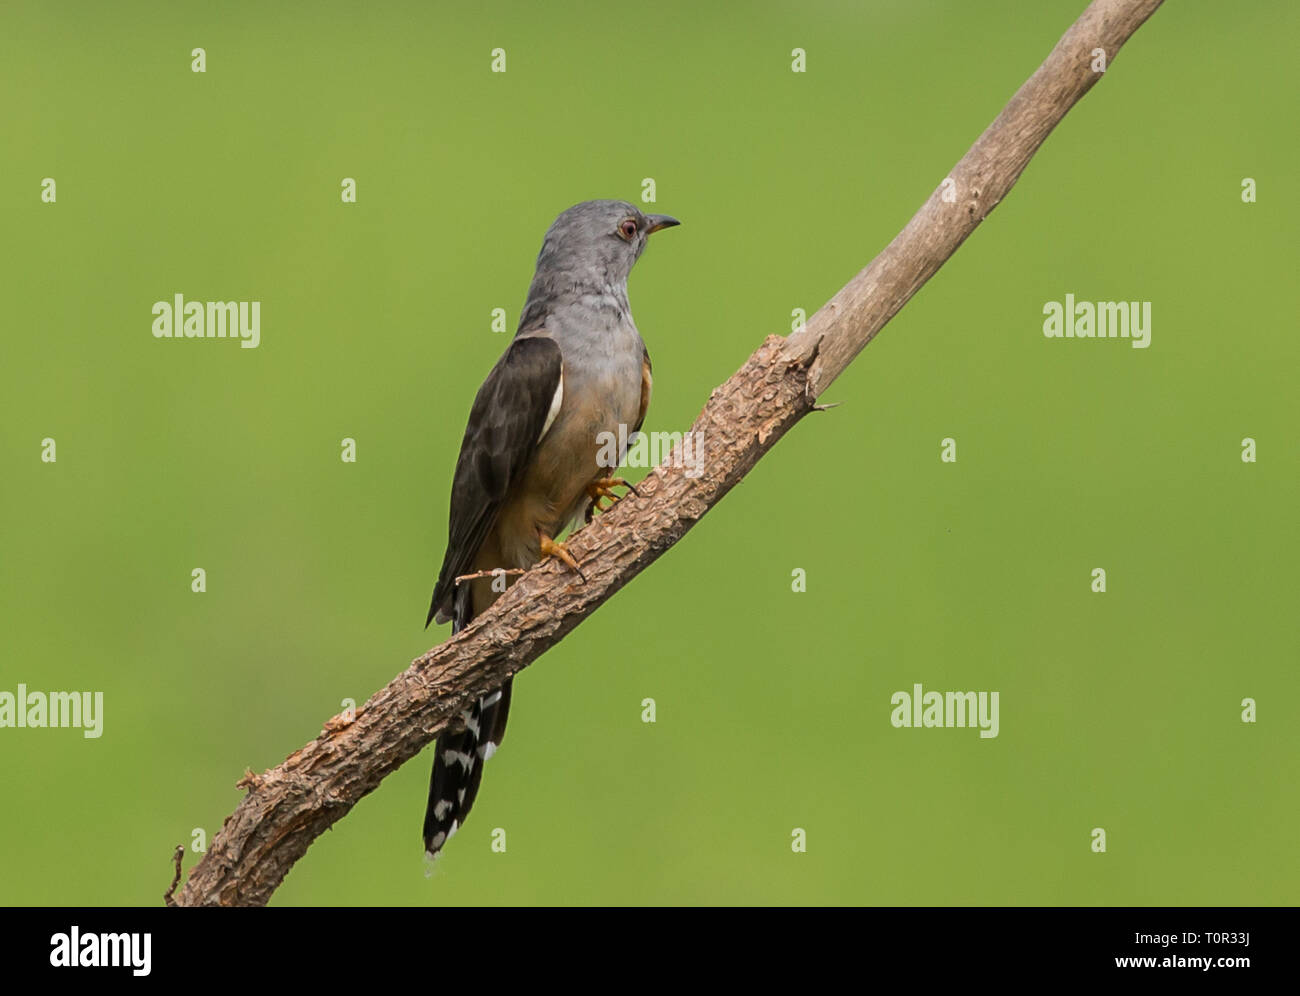 plaintive cuckoo : Cacomantis merulinus) on banch with green background. - Stock Image